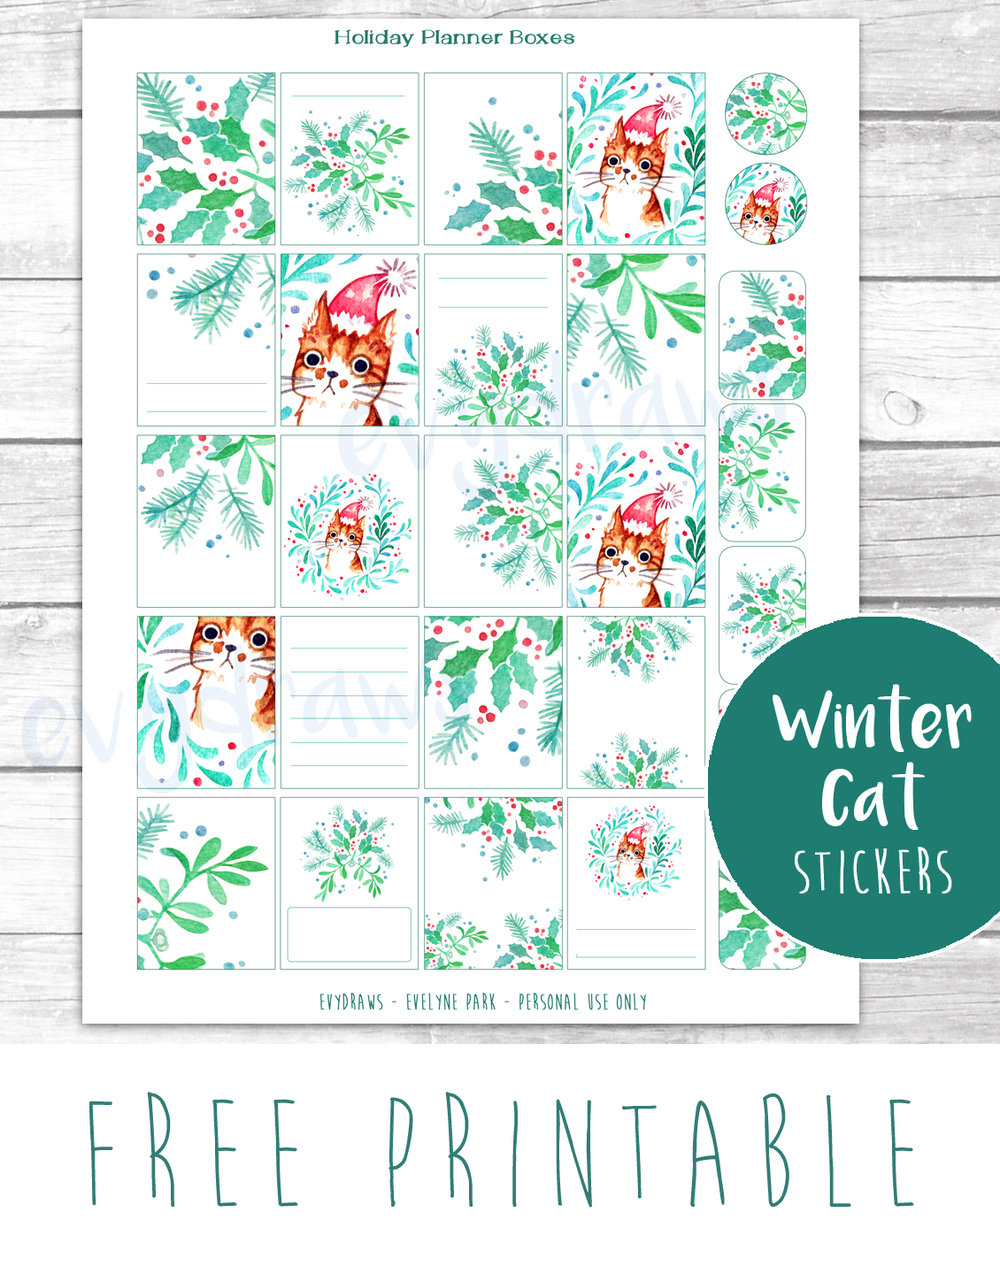 FREE printable DIY Holiday planner stickers.  Created with my watercolor Santa Cat and mistletoe wreath illustrations, these cute and unique planner stickers are perfect for the Erin Condren Life Planner - or for last-minute gift wrapping decorations! I use them like gift tags myself... Also up for the Holidays: Free greetings cards and lots of printable goodies.